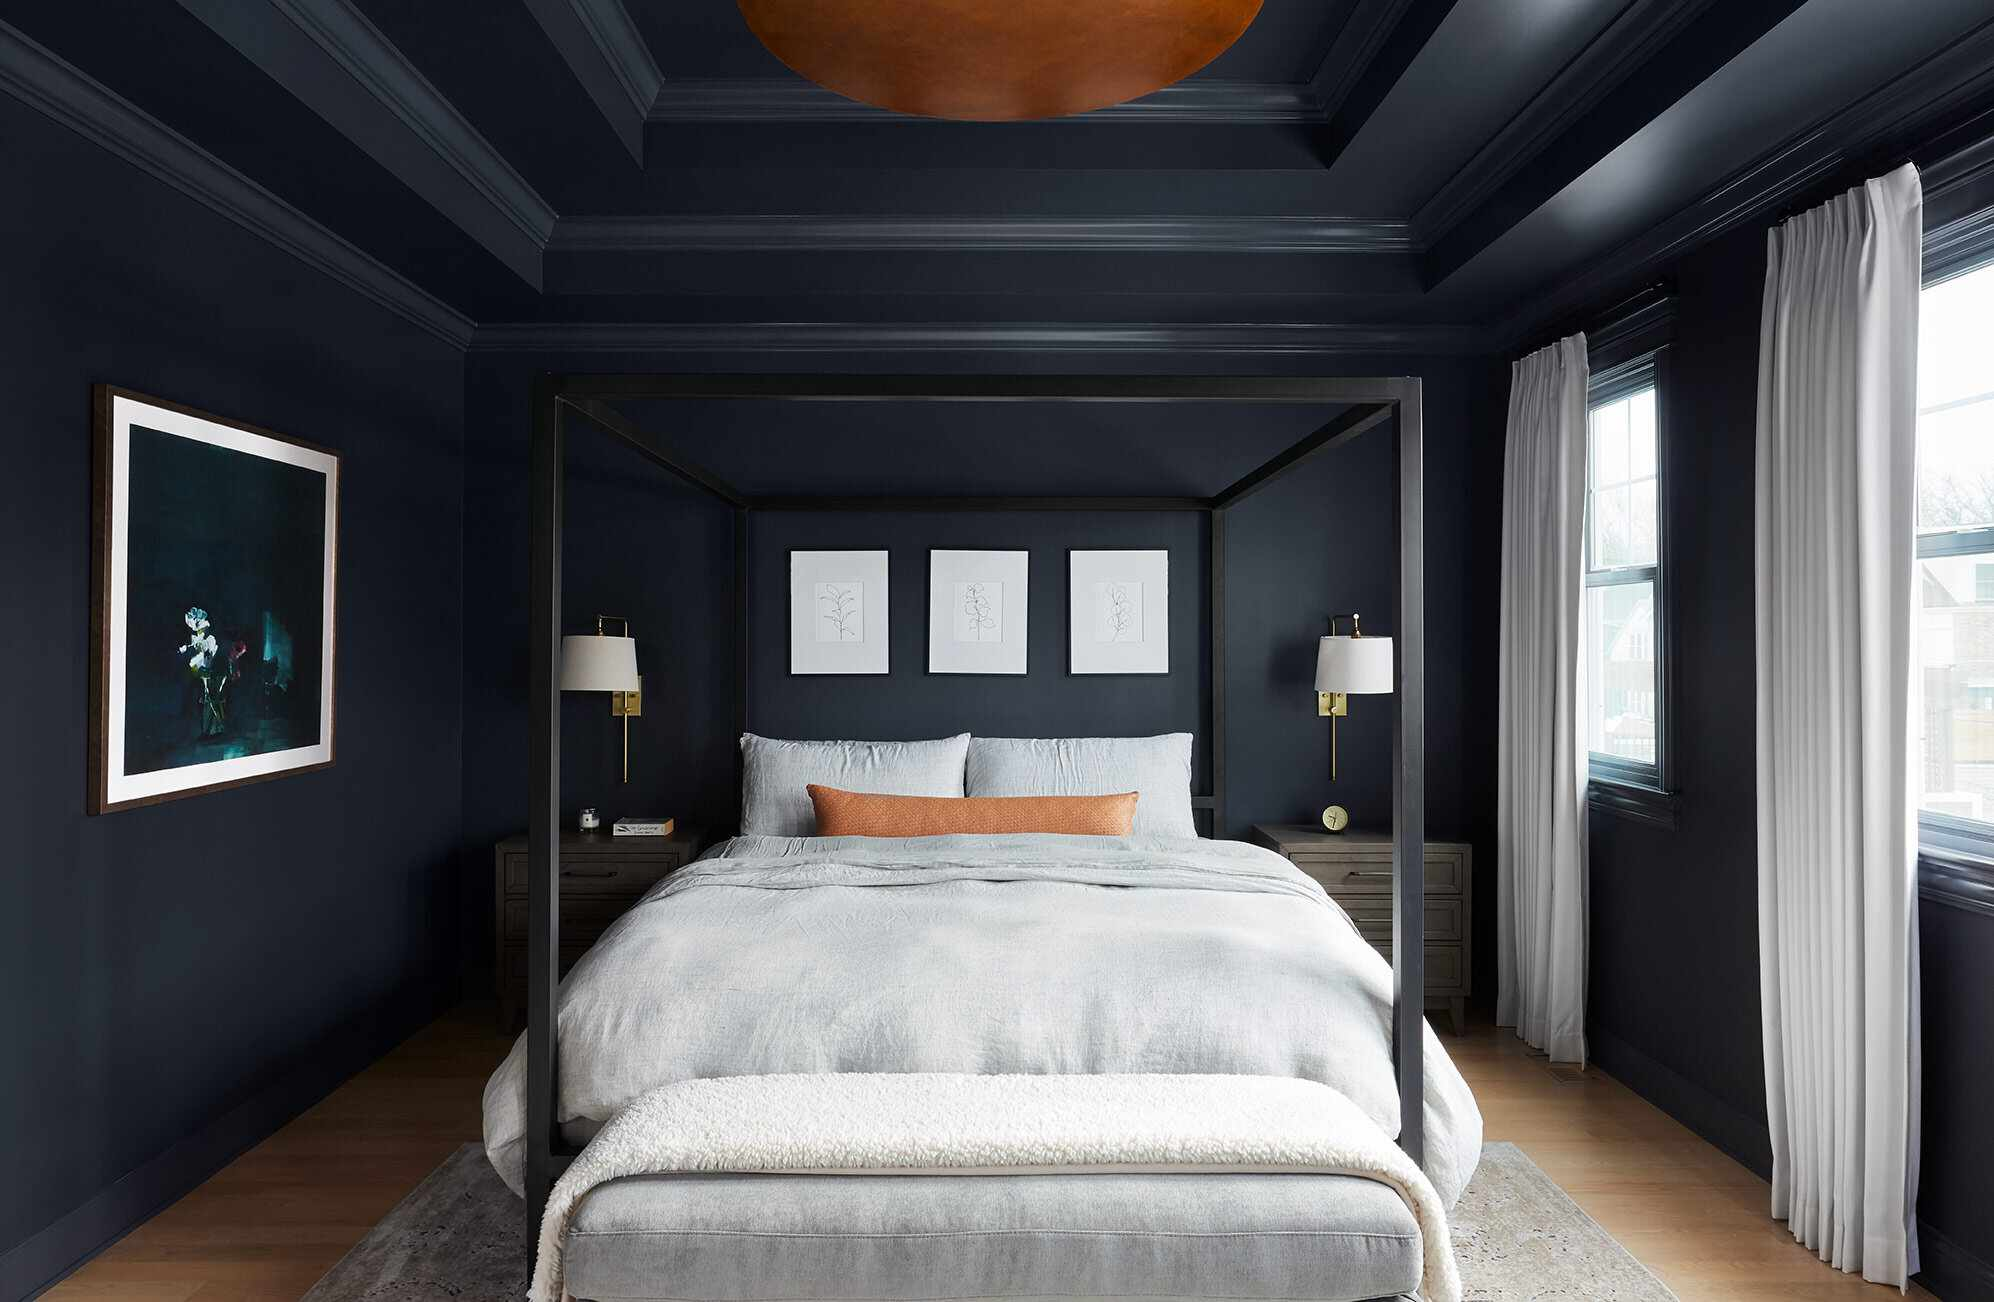 A navy bedroom with white drapes